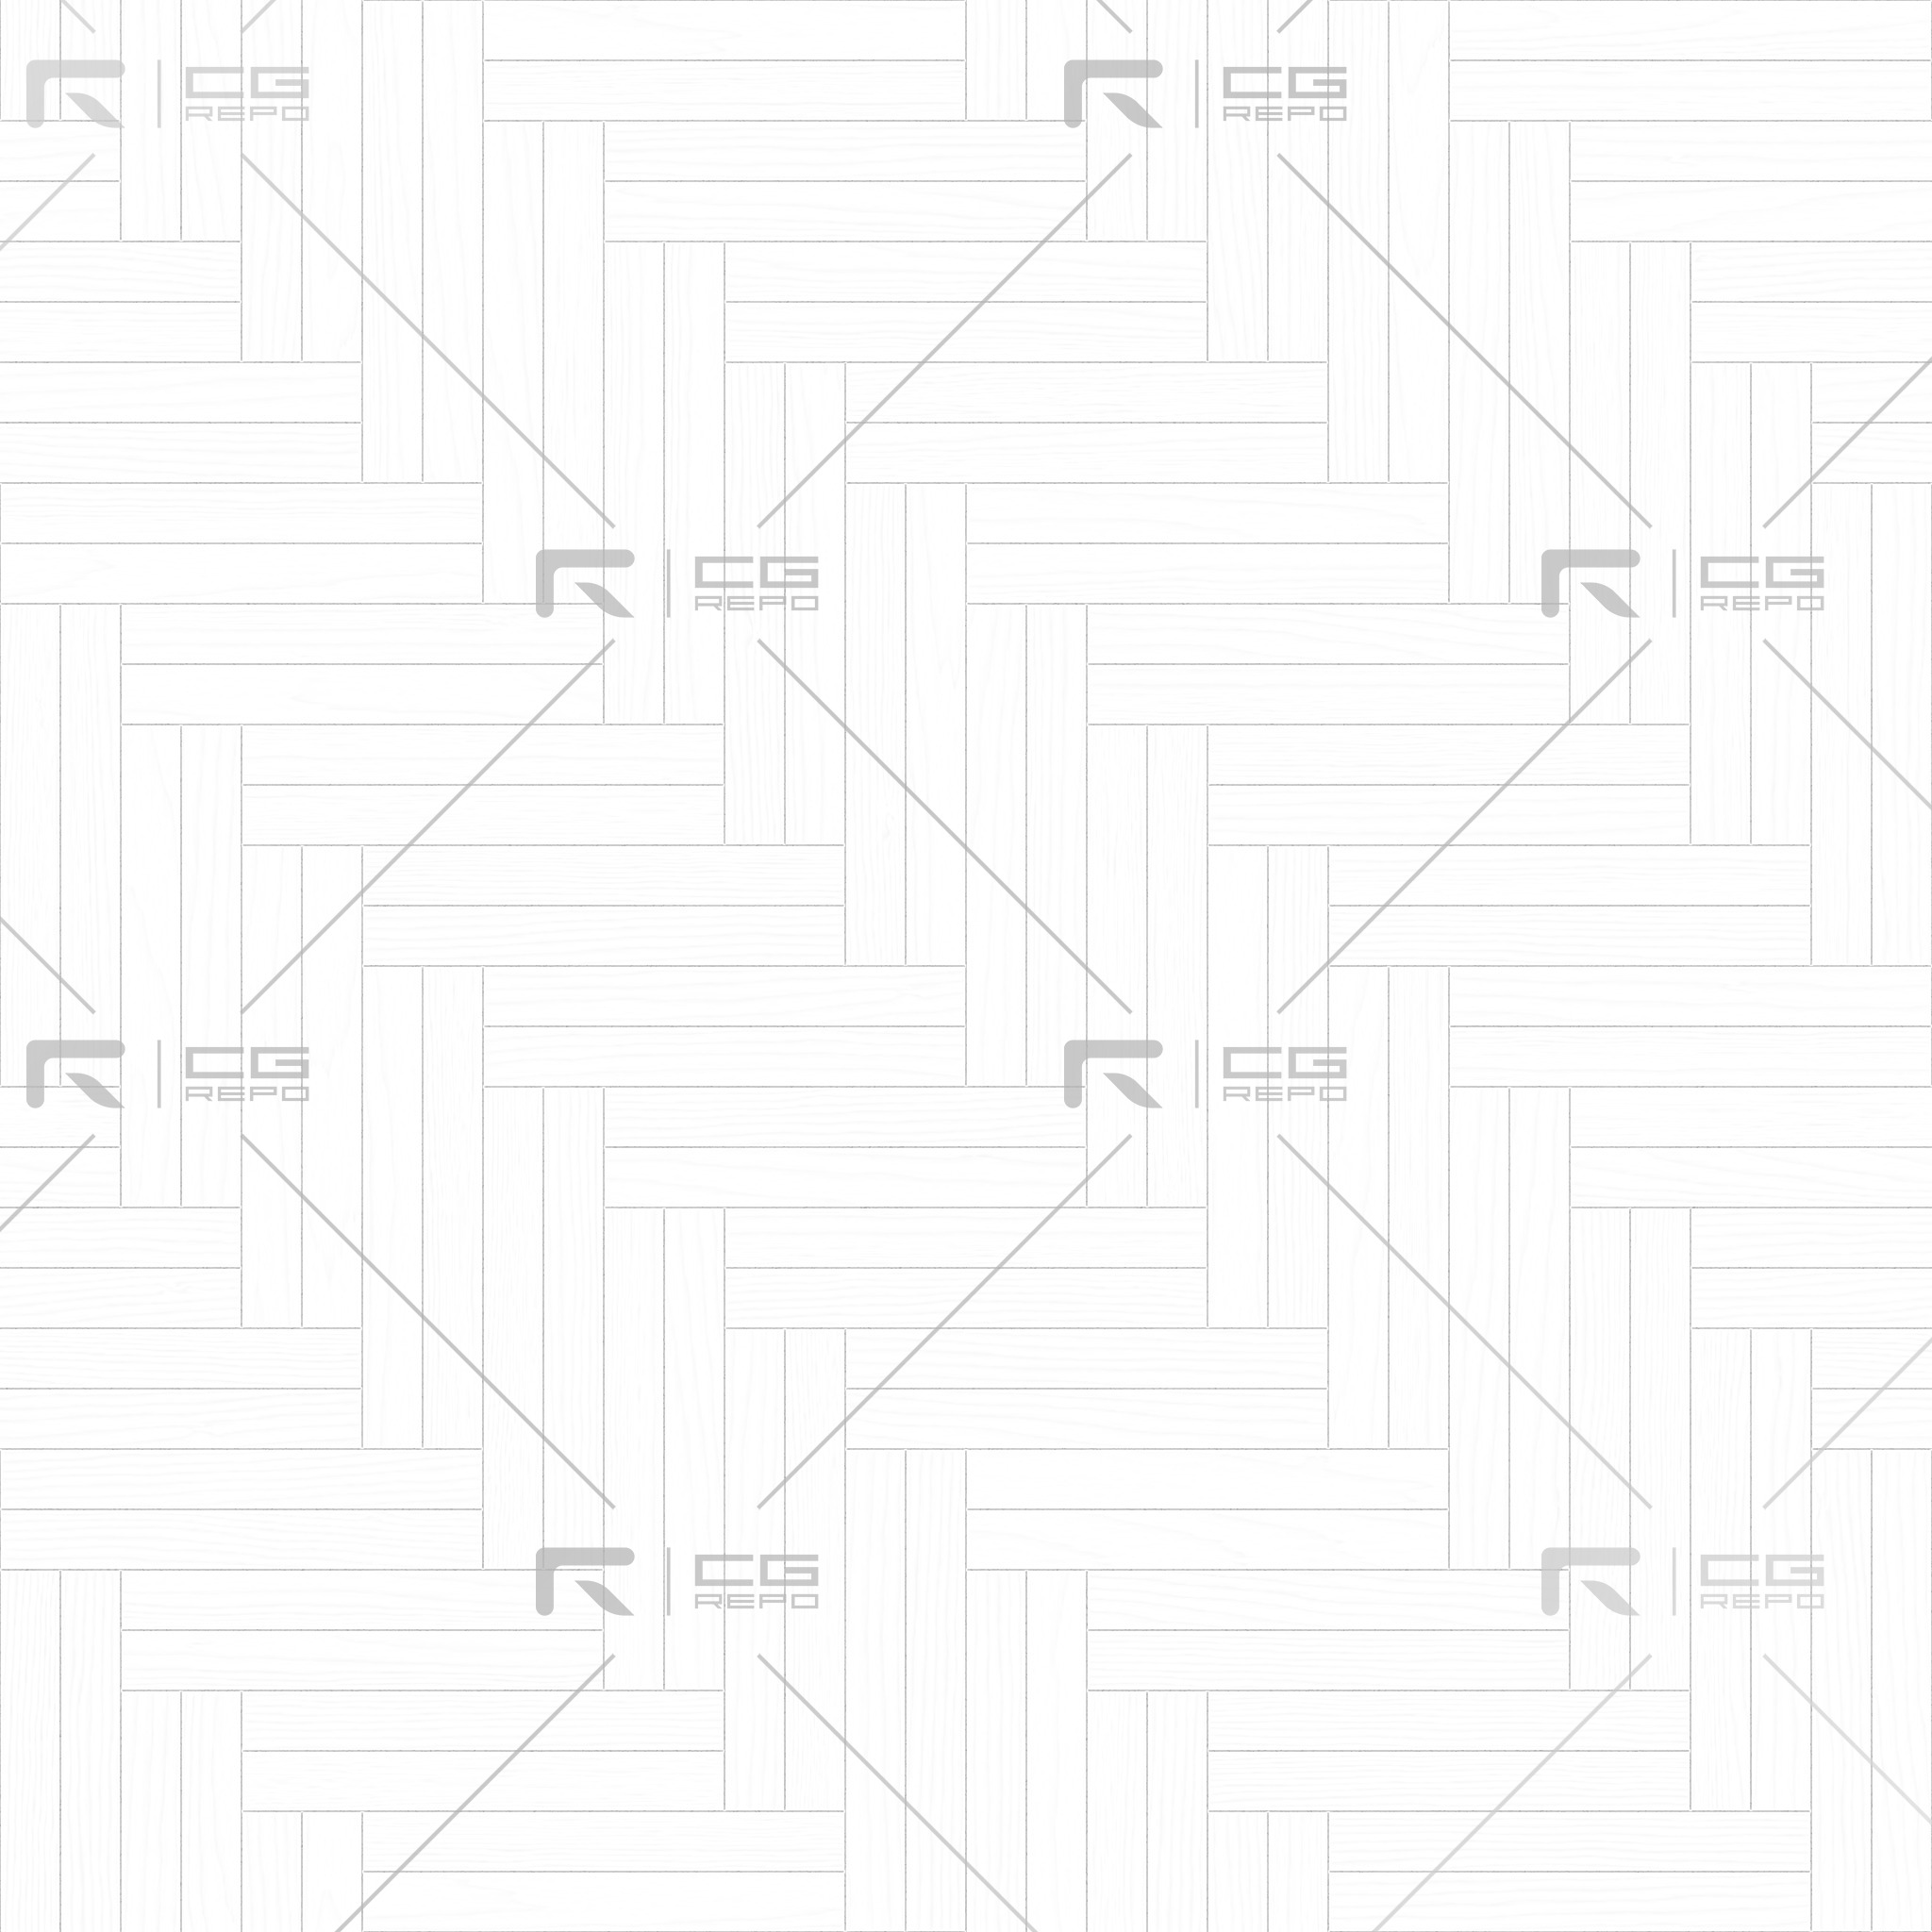 Walnut European Dark Double Herringbone Ambient Occlusion Texture